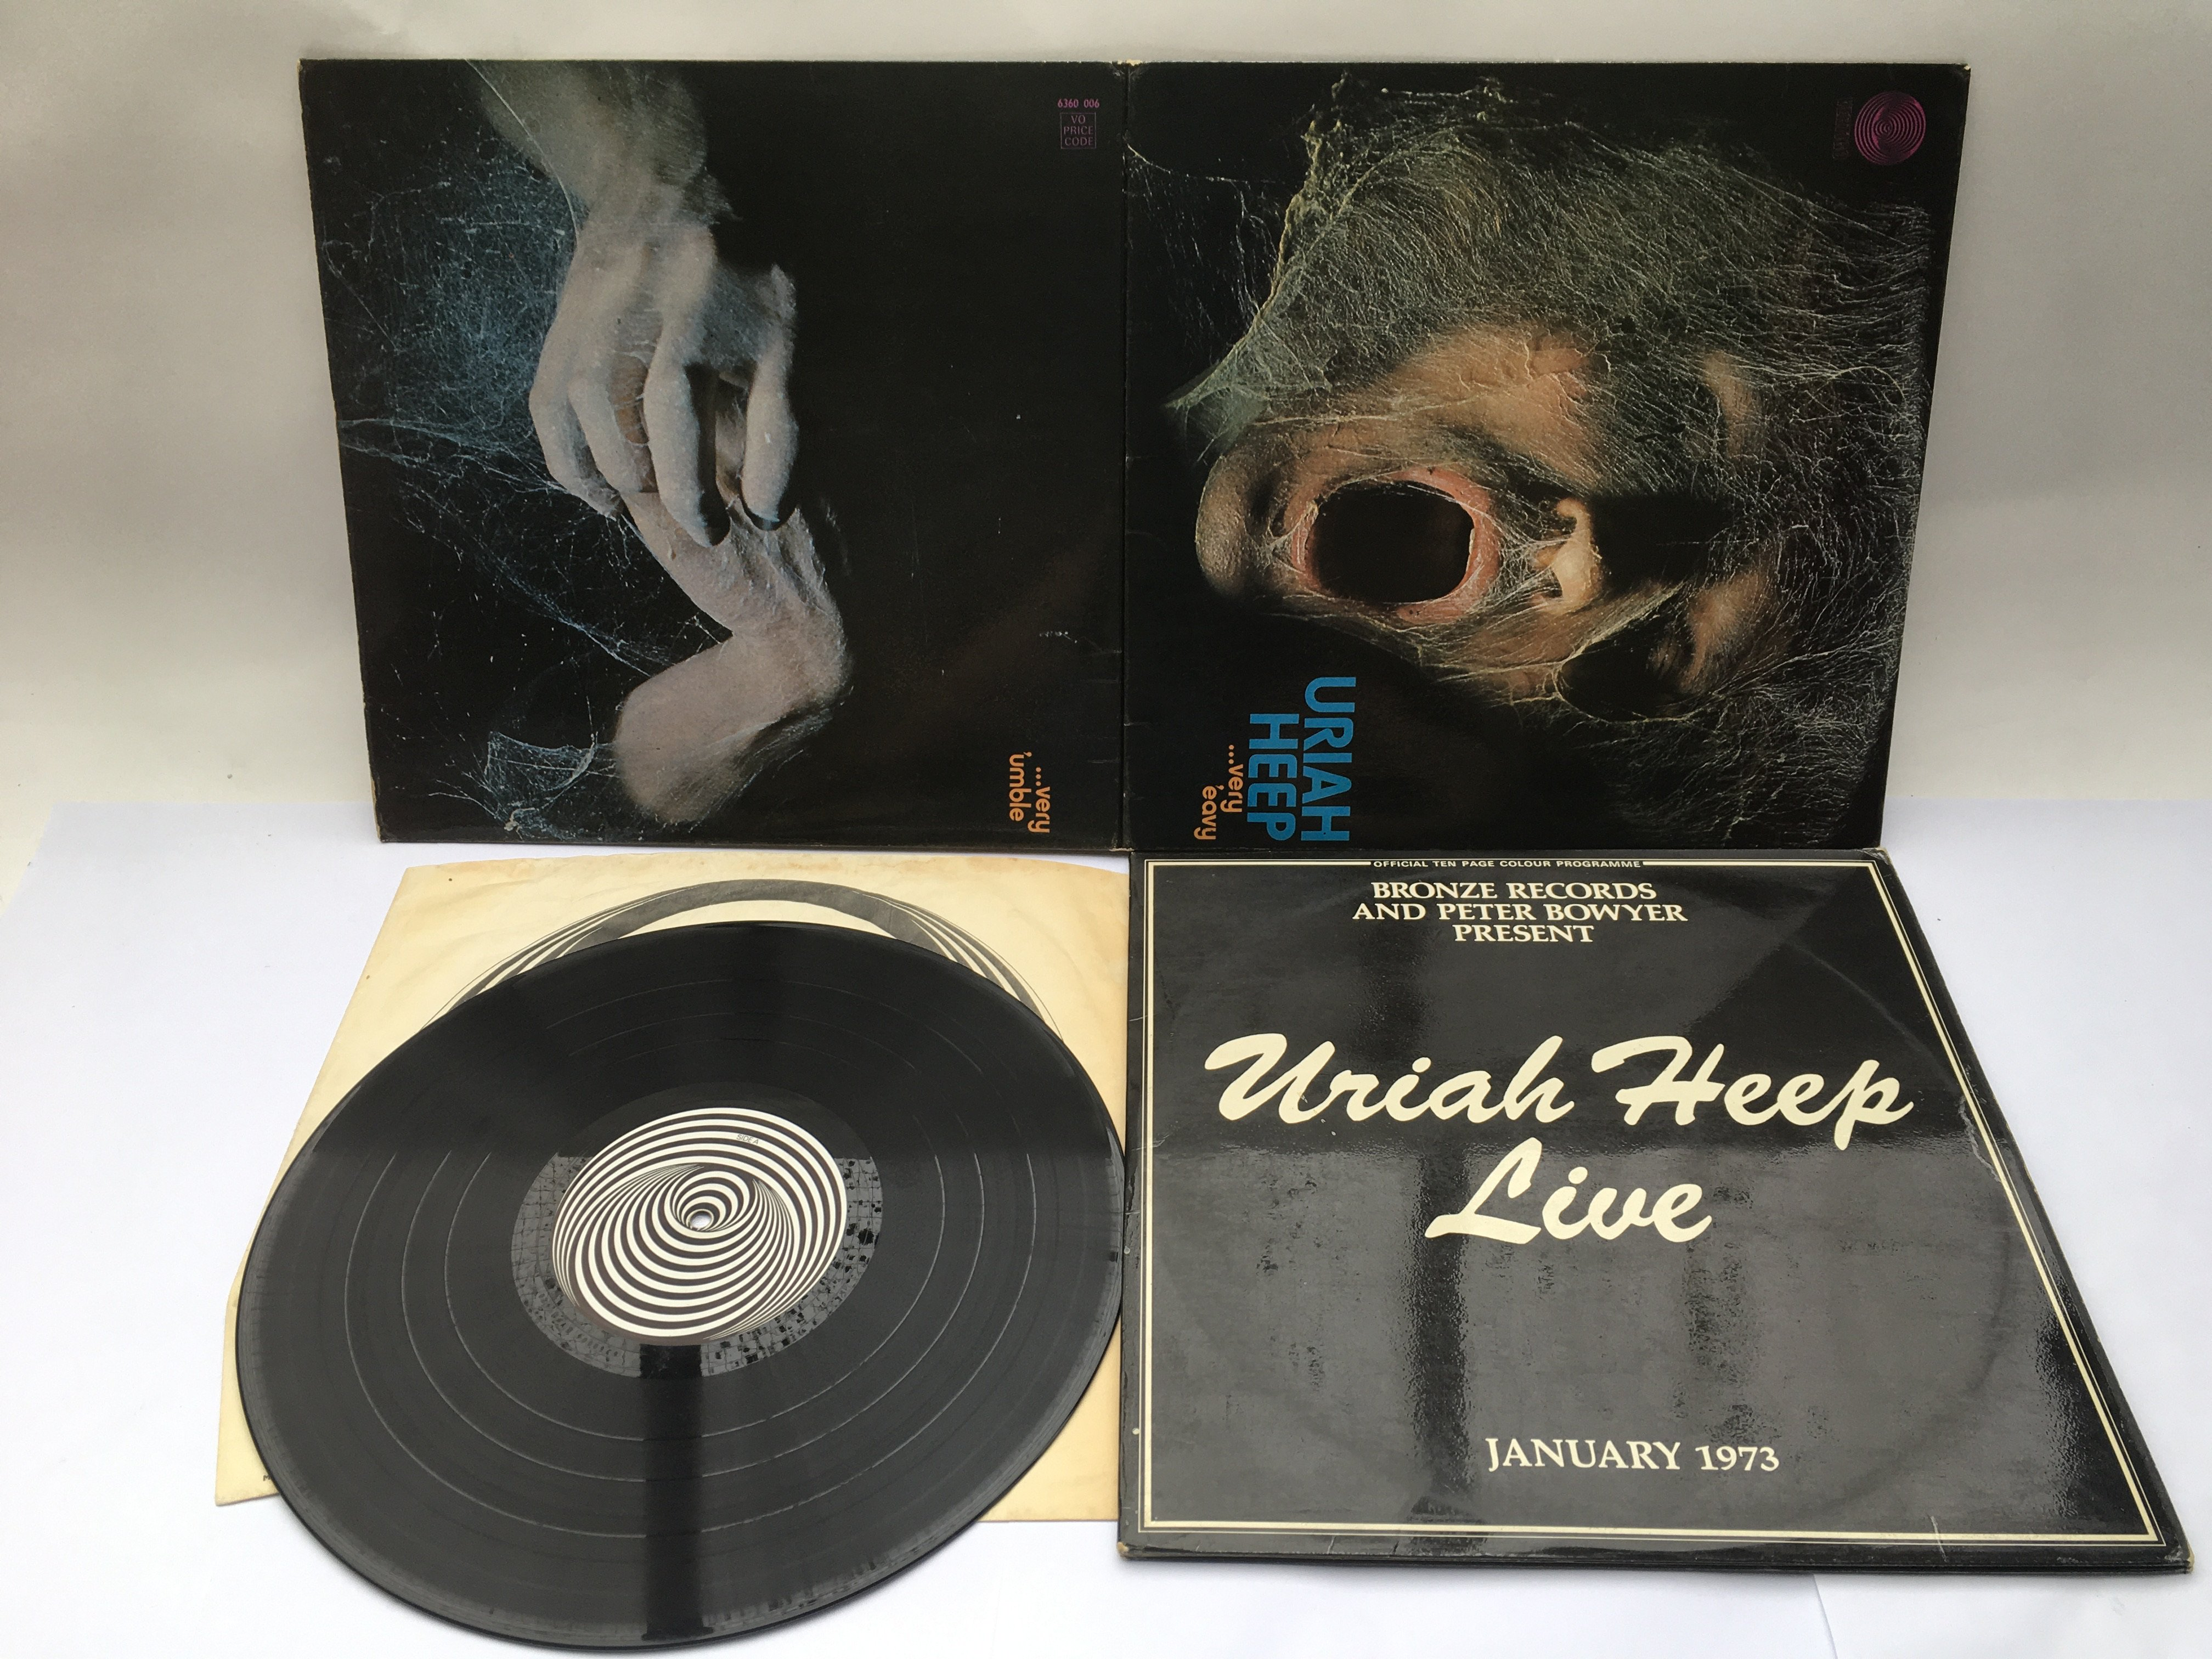 A first UK pressing of 'Very Eavy, Very Umble' by